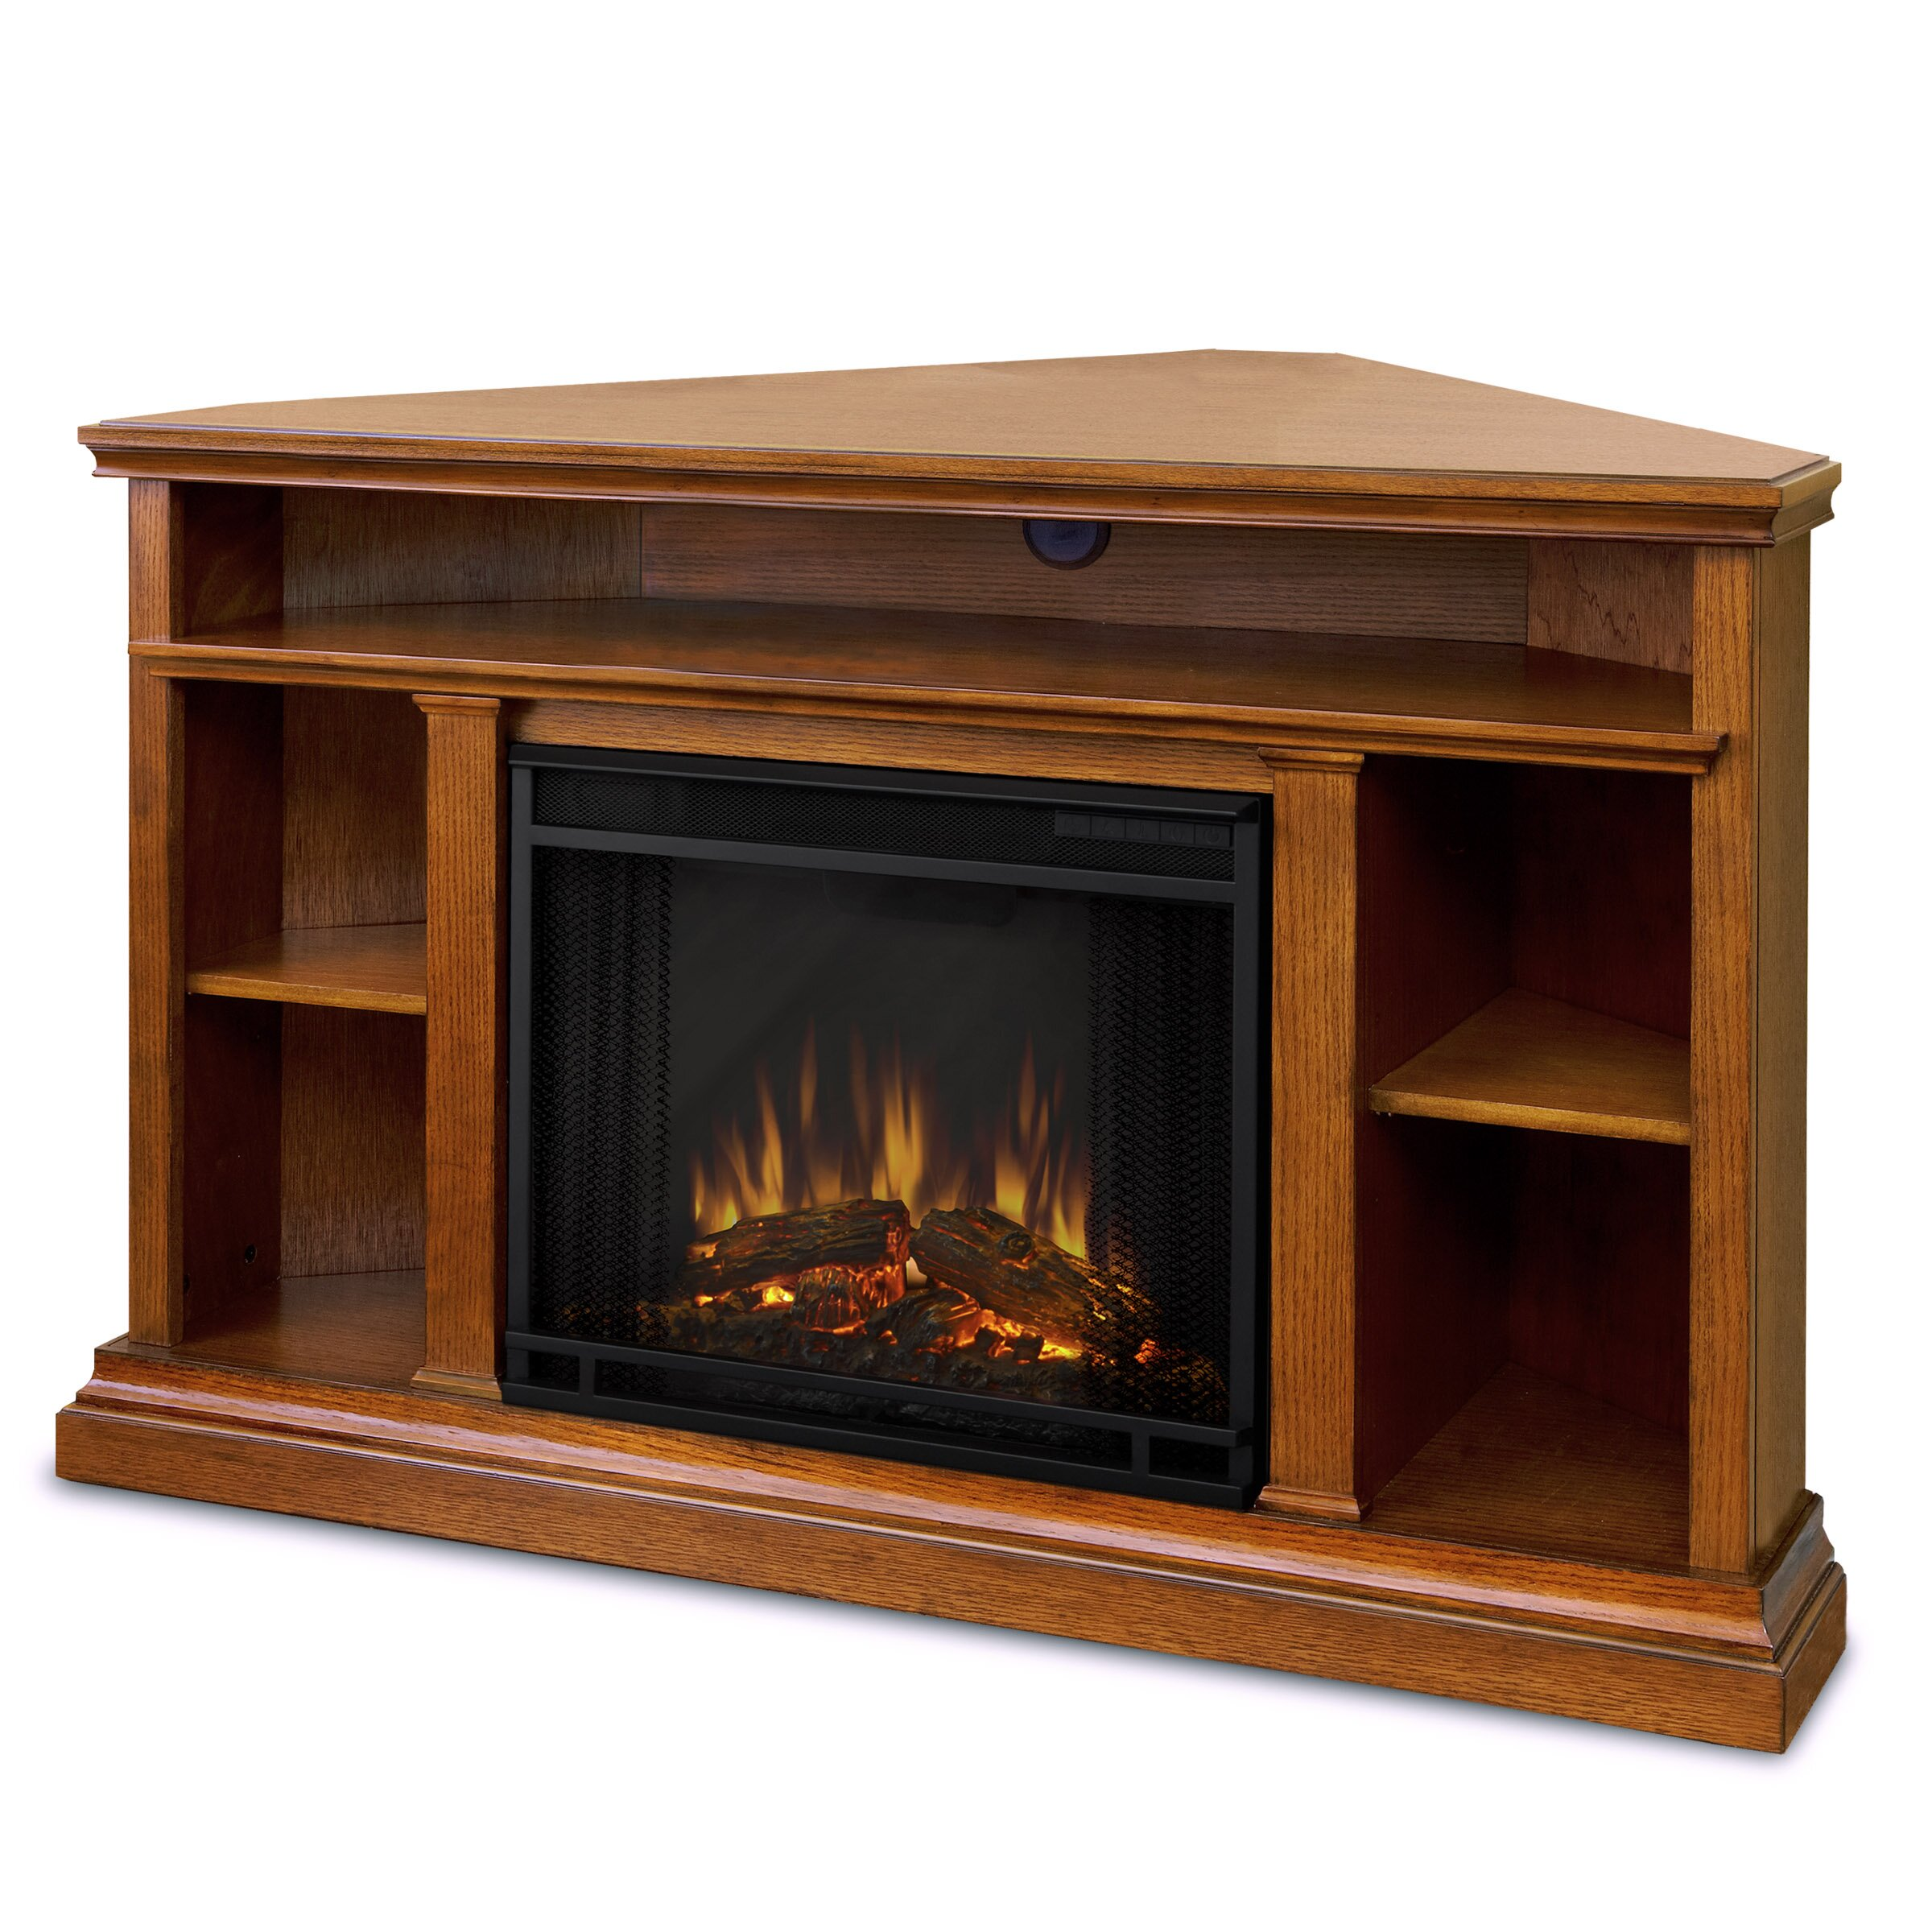 Cheap electric fireplace tv stand - Churchill Tv Stand With Electric Fireplace